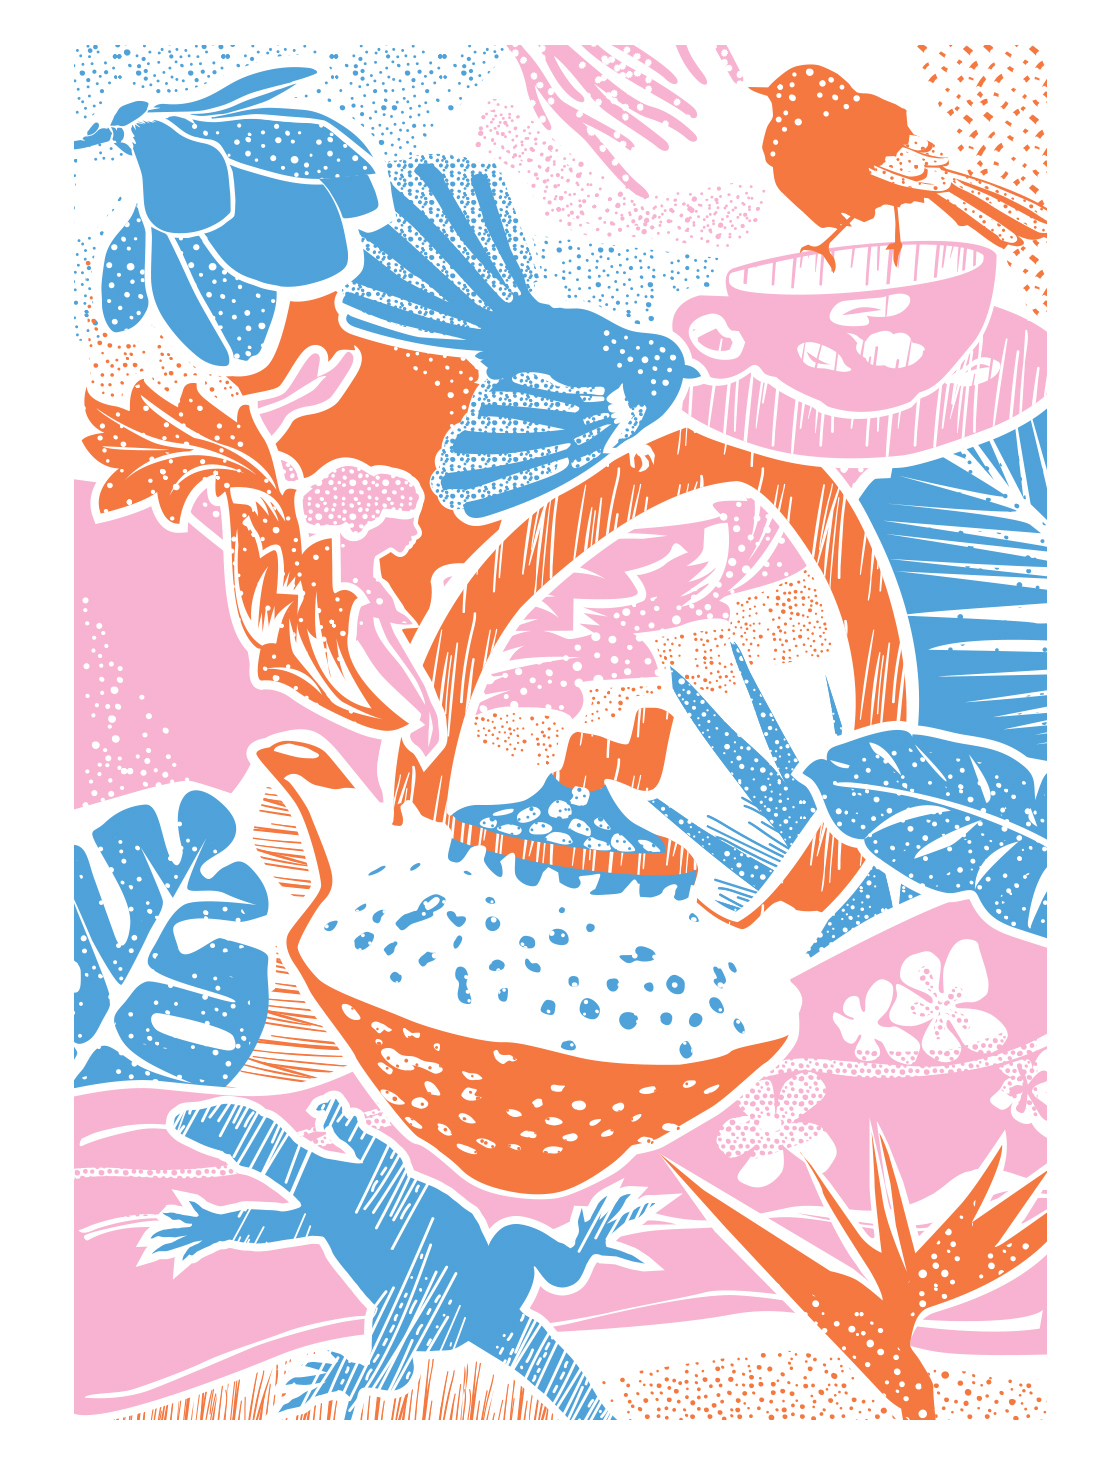 'Tea party' screen printed on tea towels and cards.